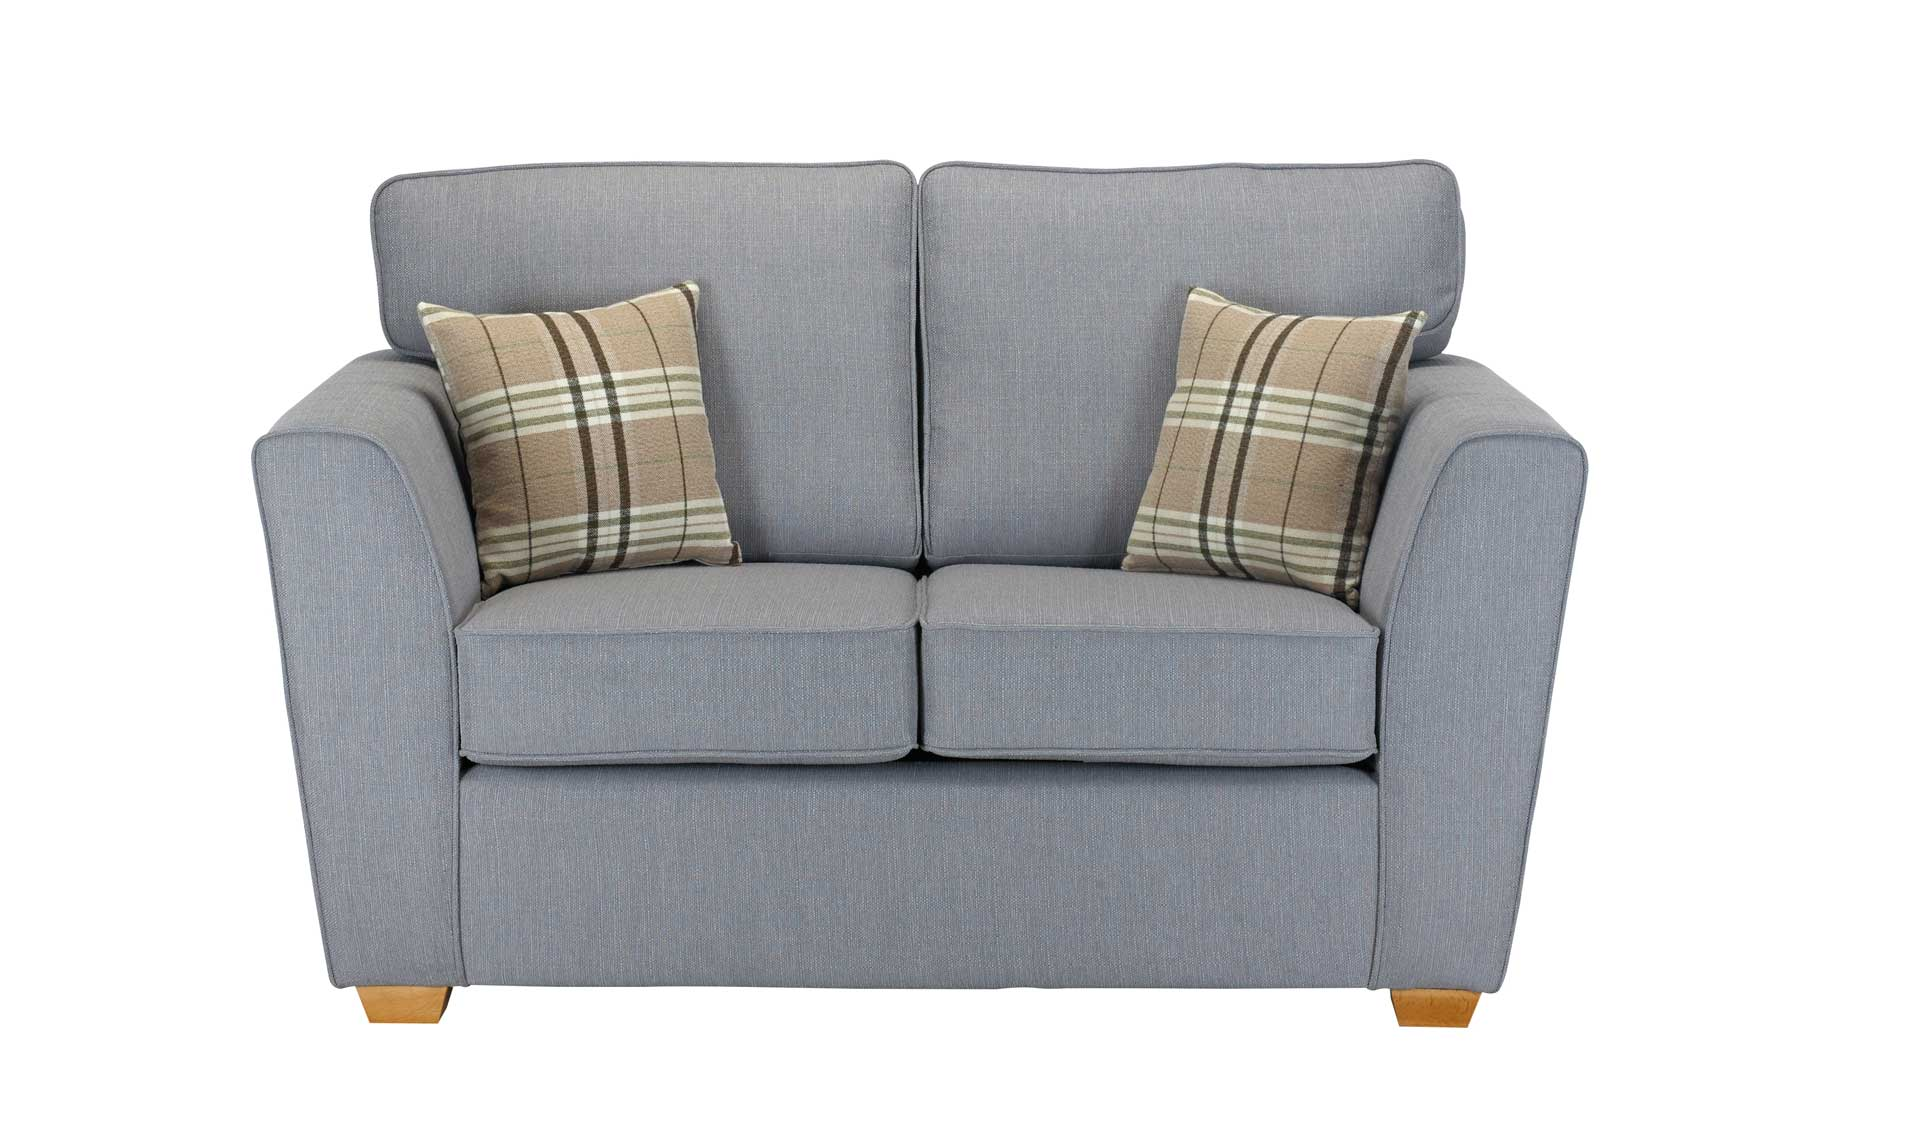 Bluebell 2 Seater Sofa - available as a chaise, 3 seater, 2 seater and chair.